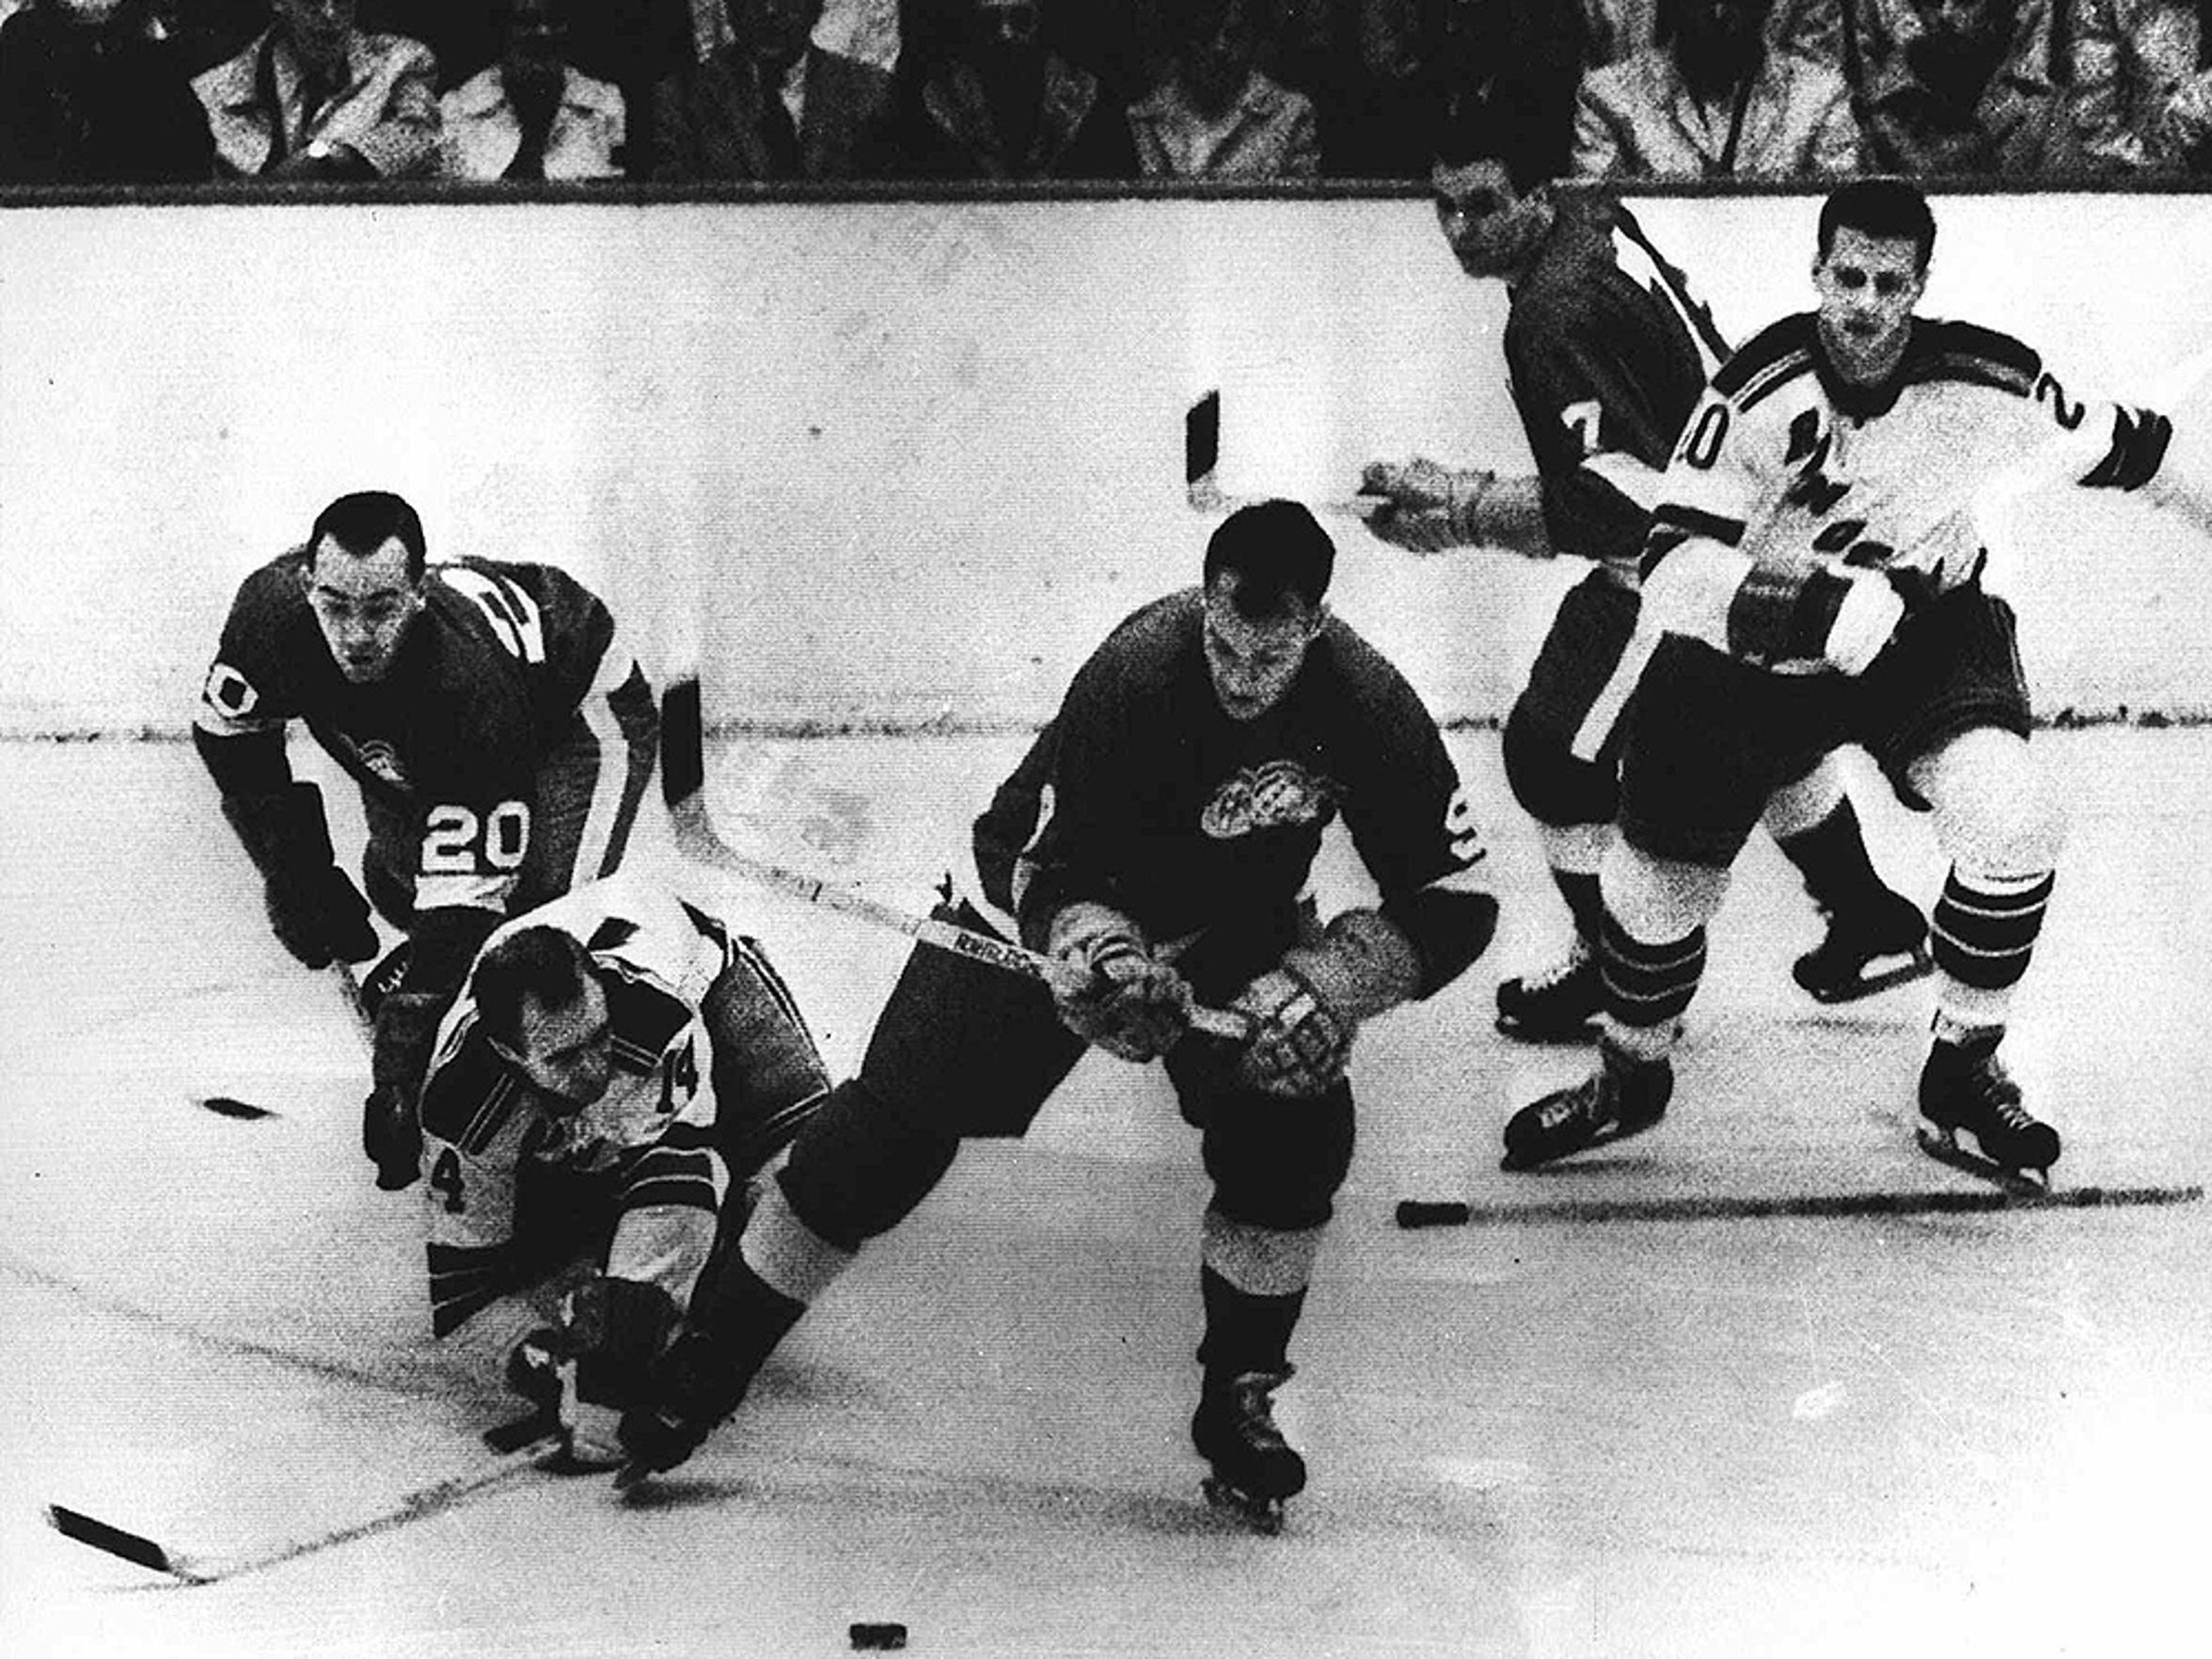 Gordie Howe, with the puck, playing for the Red Wings against the Rangers in November 1963.